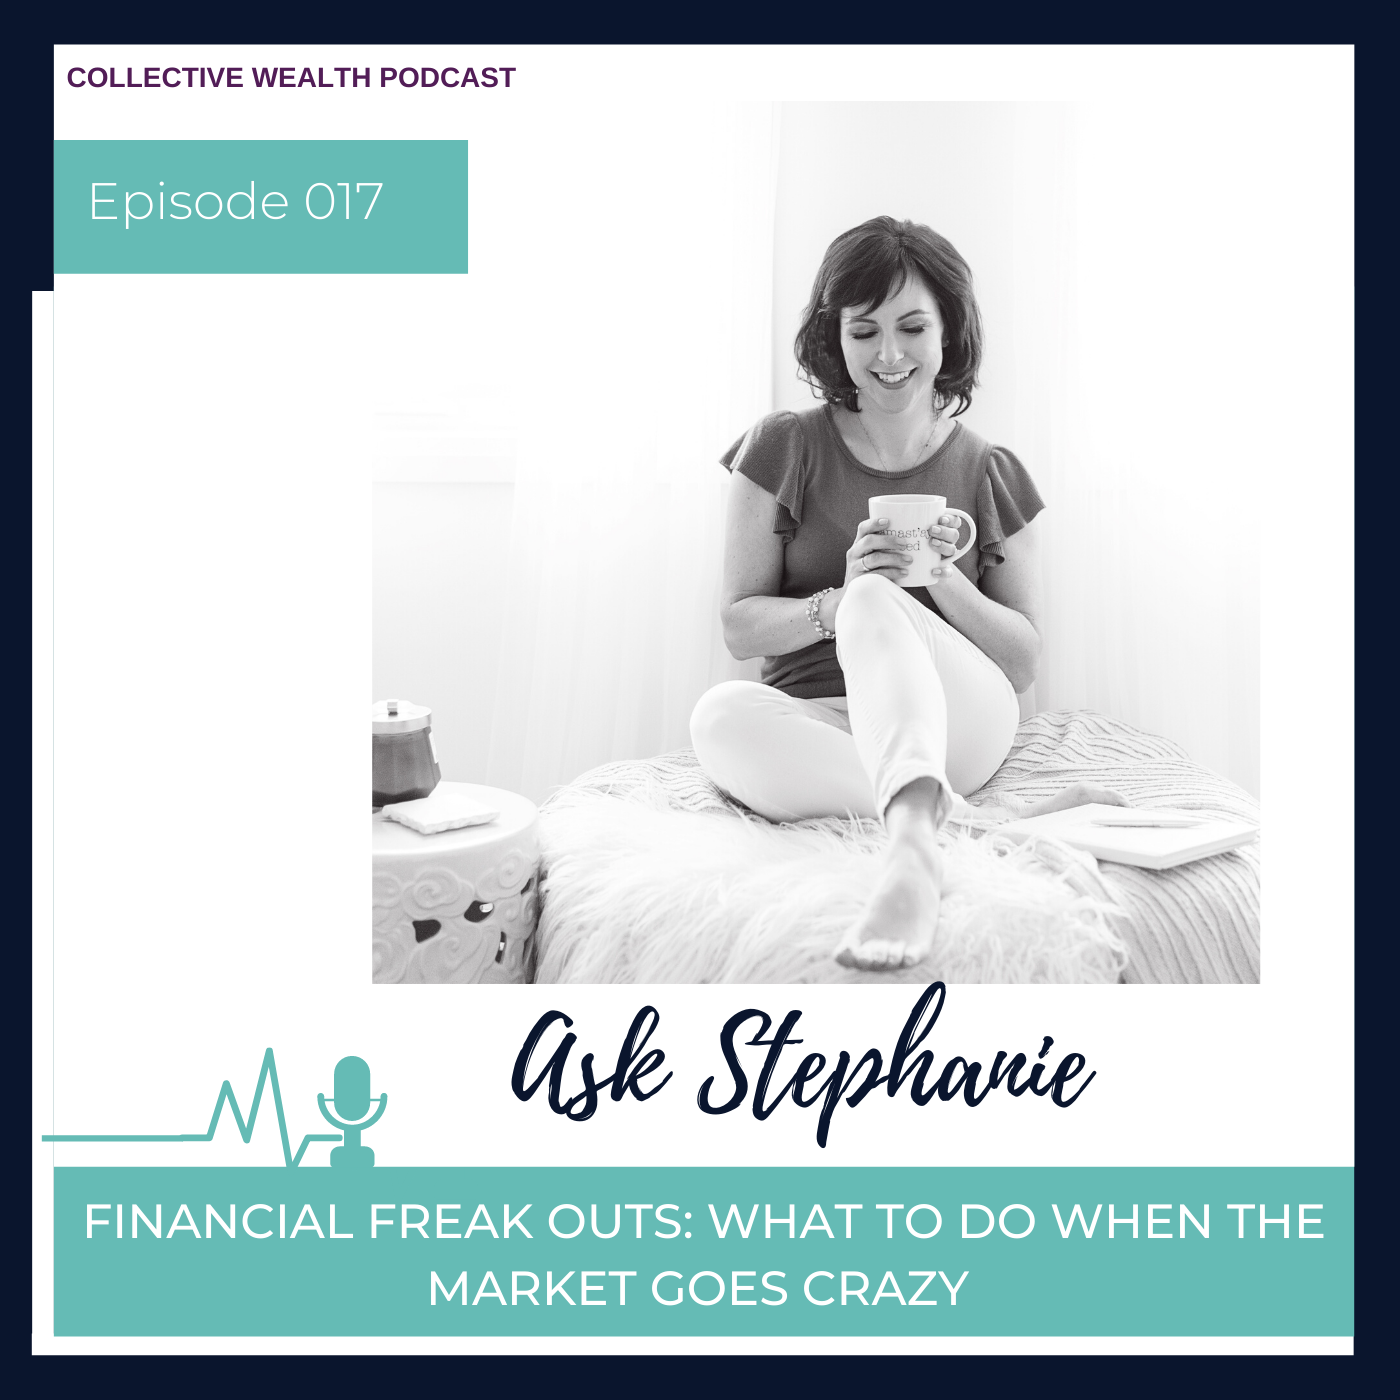 S1E17: Ask Stephanie: Financial freak-outs: what to do when the market goes crazy